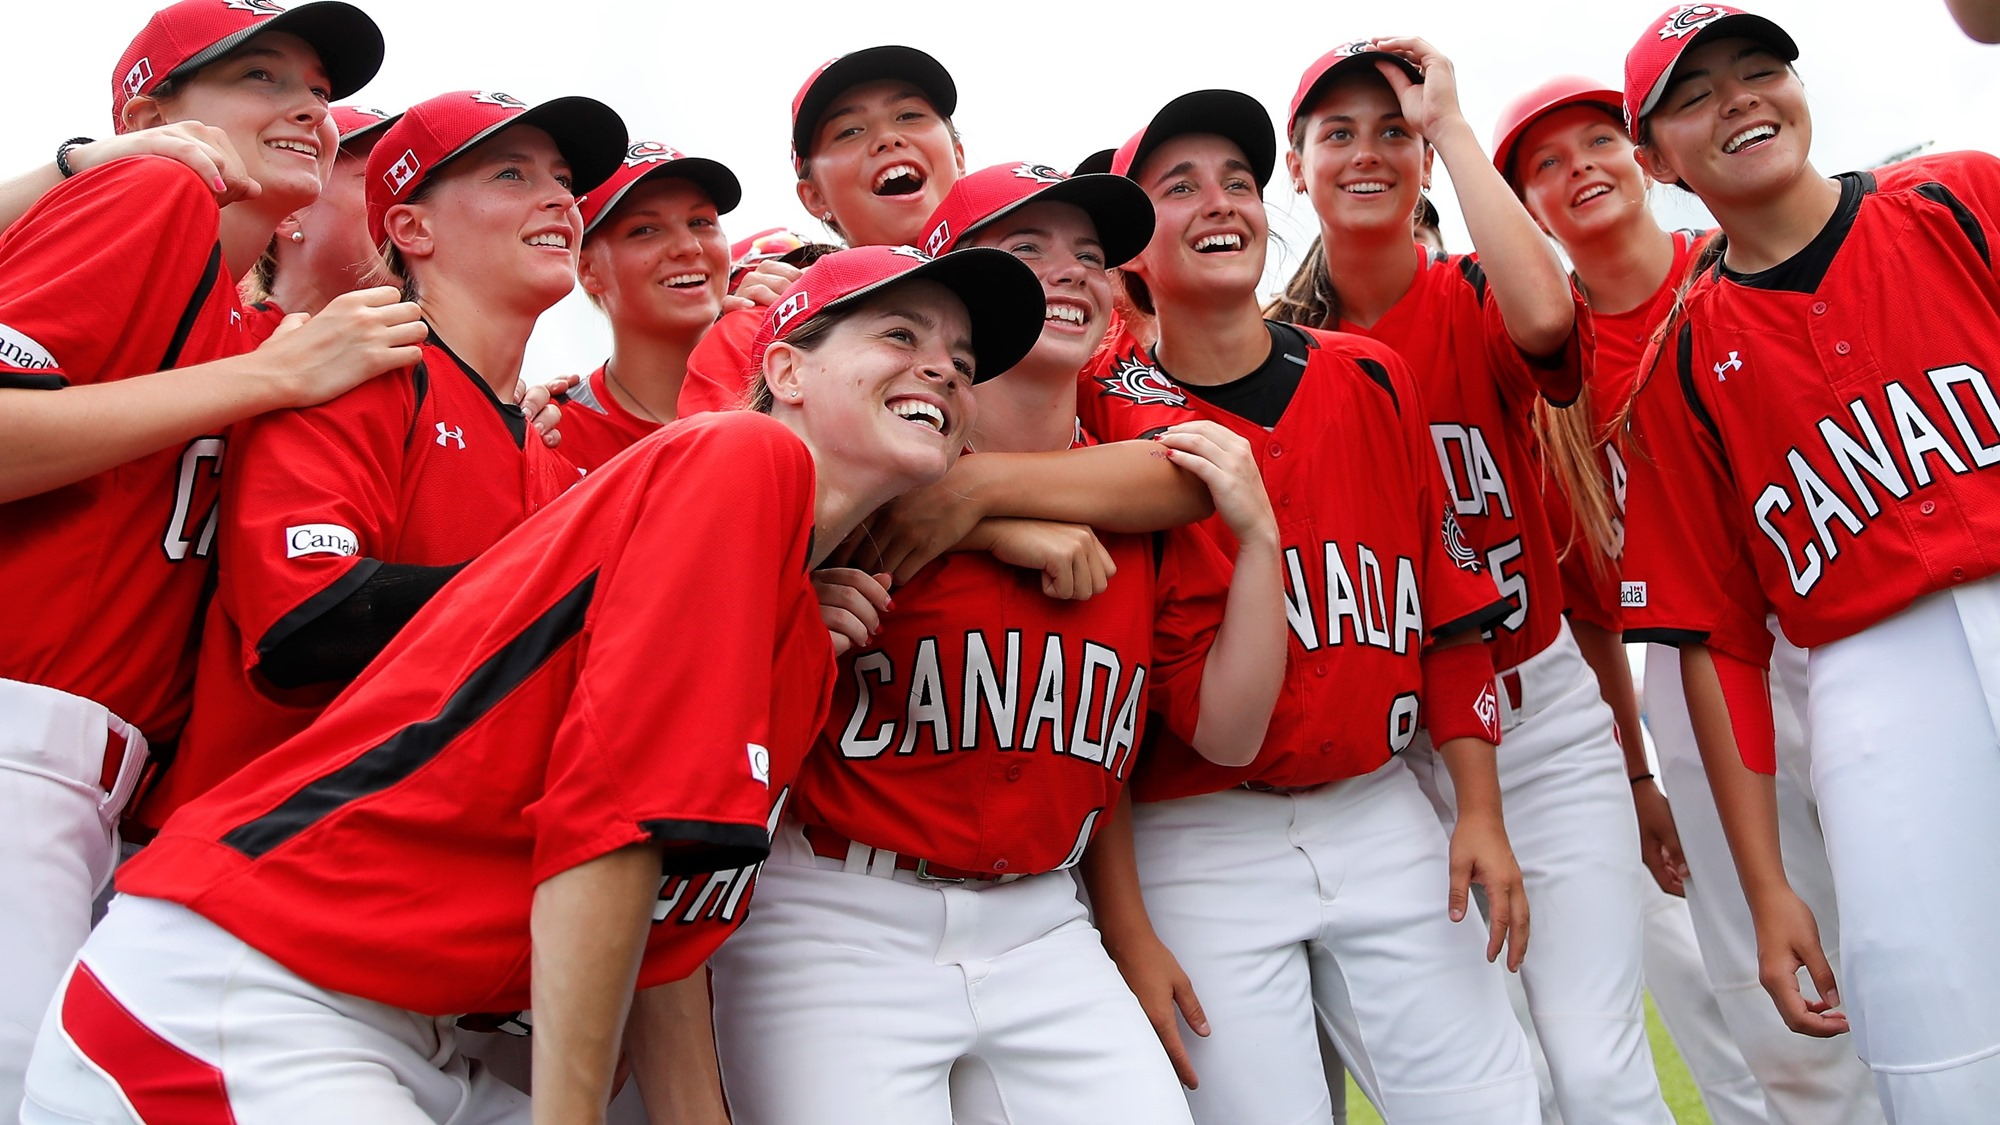 Canada posing for a selfie after the win against Venezuela